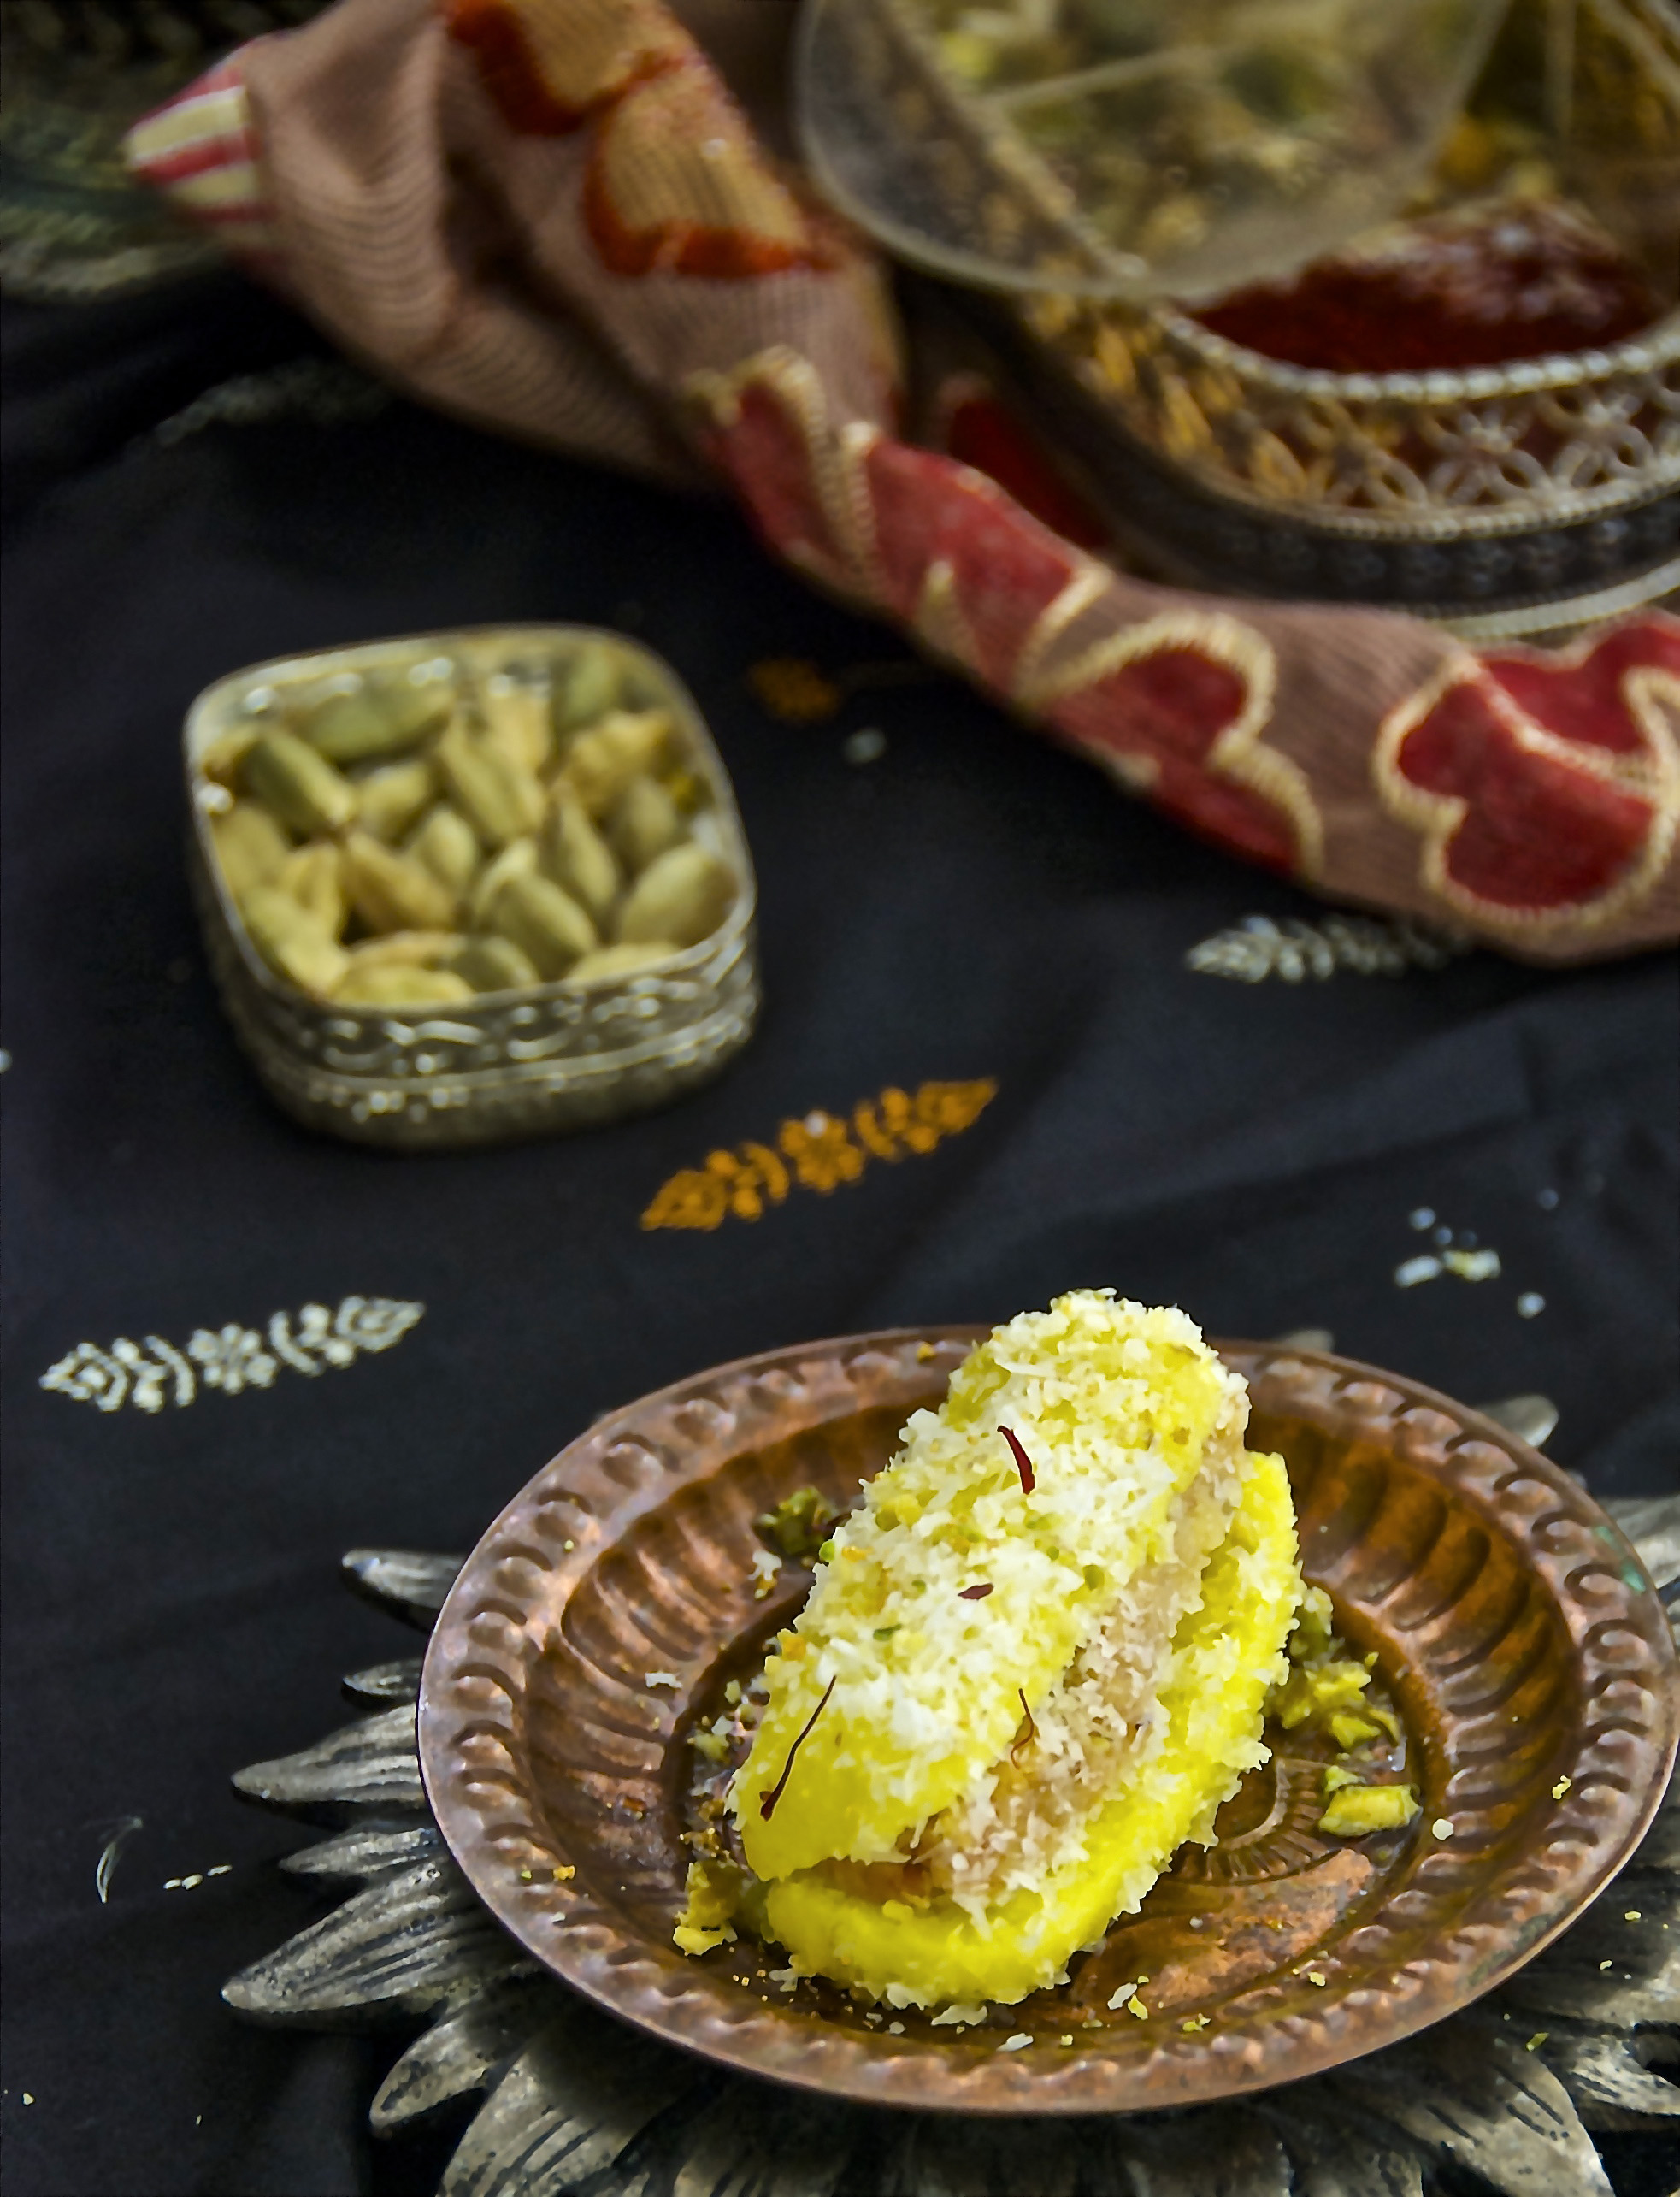 cham cham is a delicious dessert made of home made panner and is an ideal Diwali sweet. Not only it is easy to prepare but definitely a crowd pleaser.